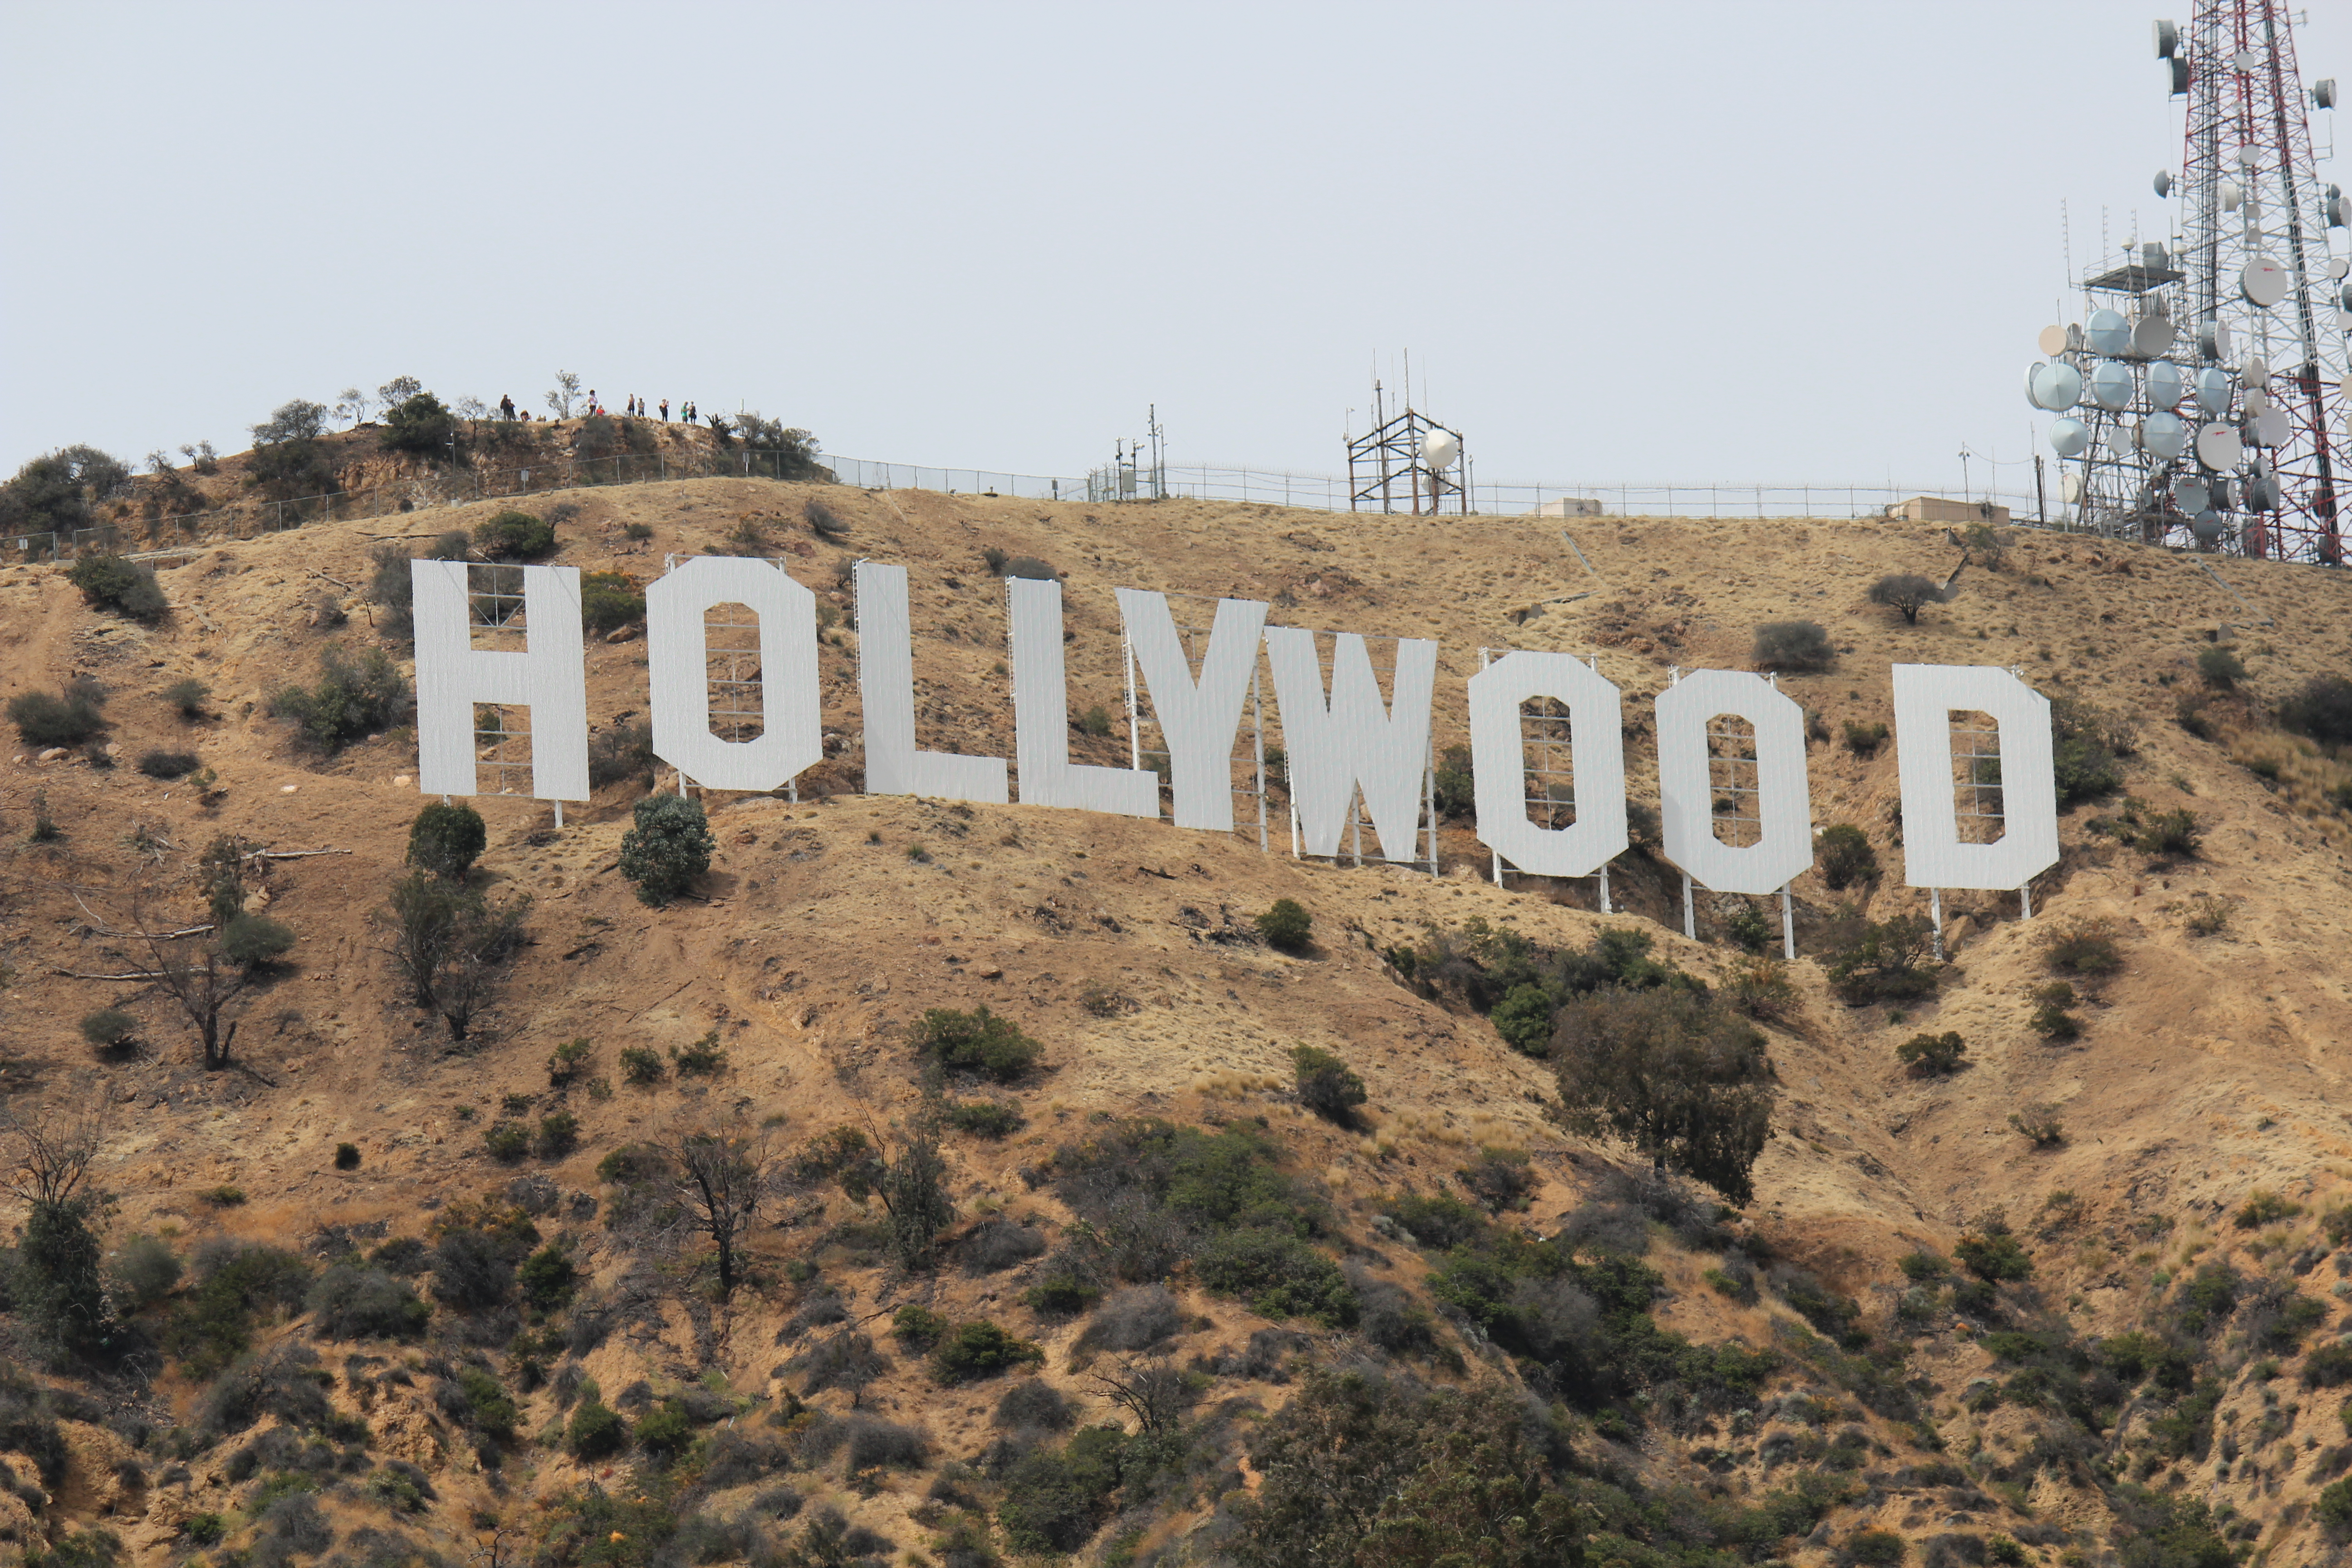 Hollywood Sign, Hollywood Los Angeles, California